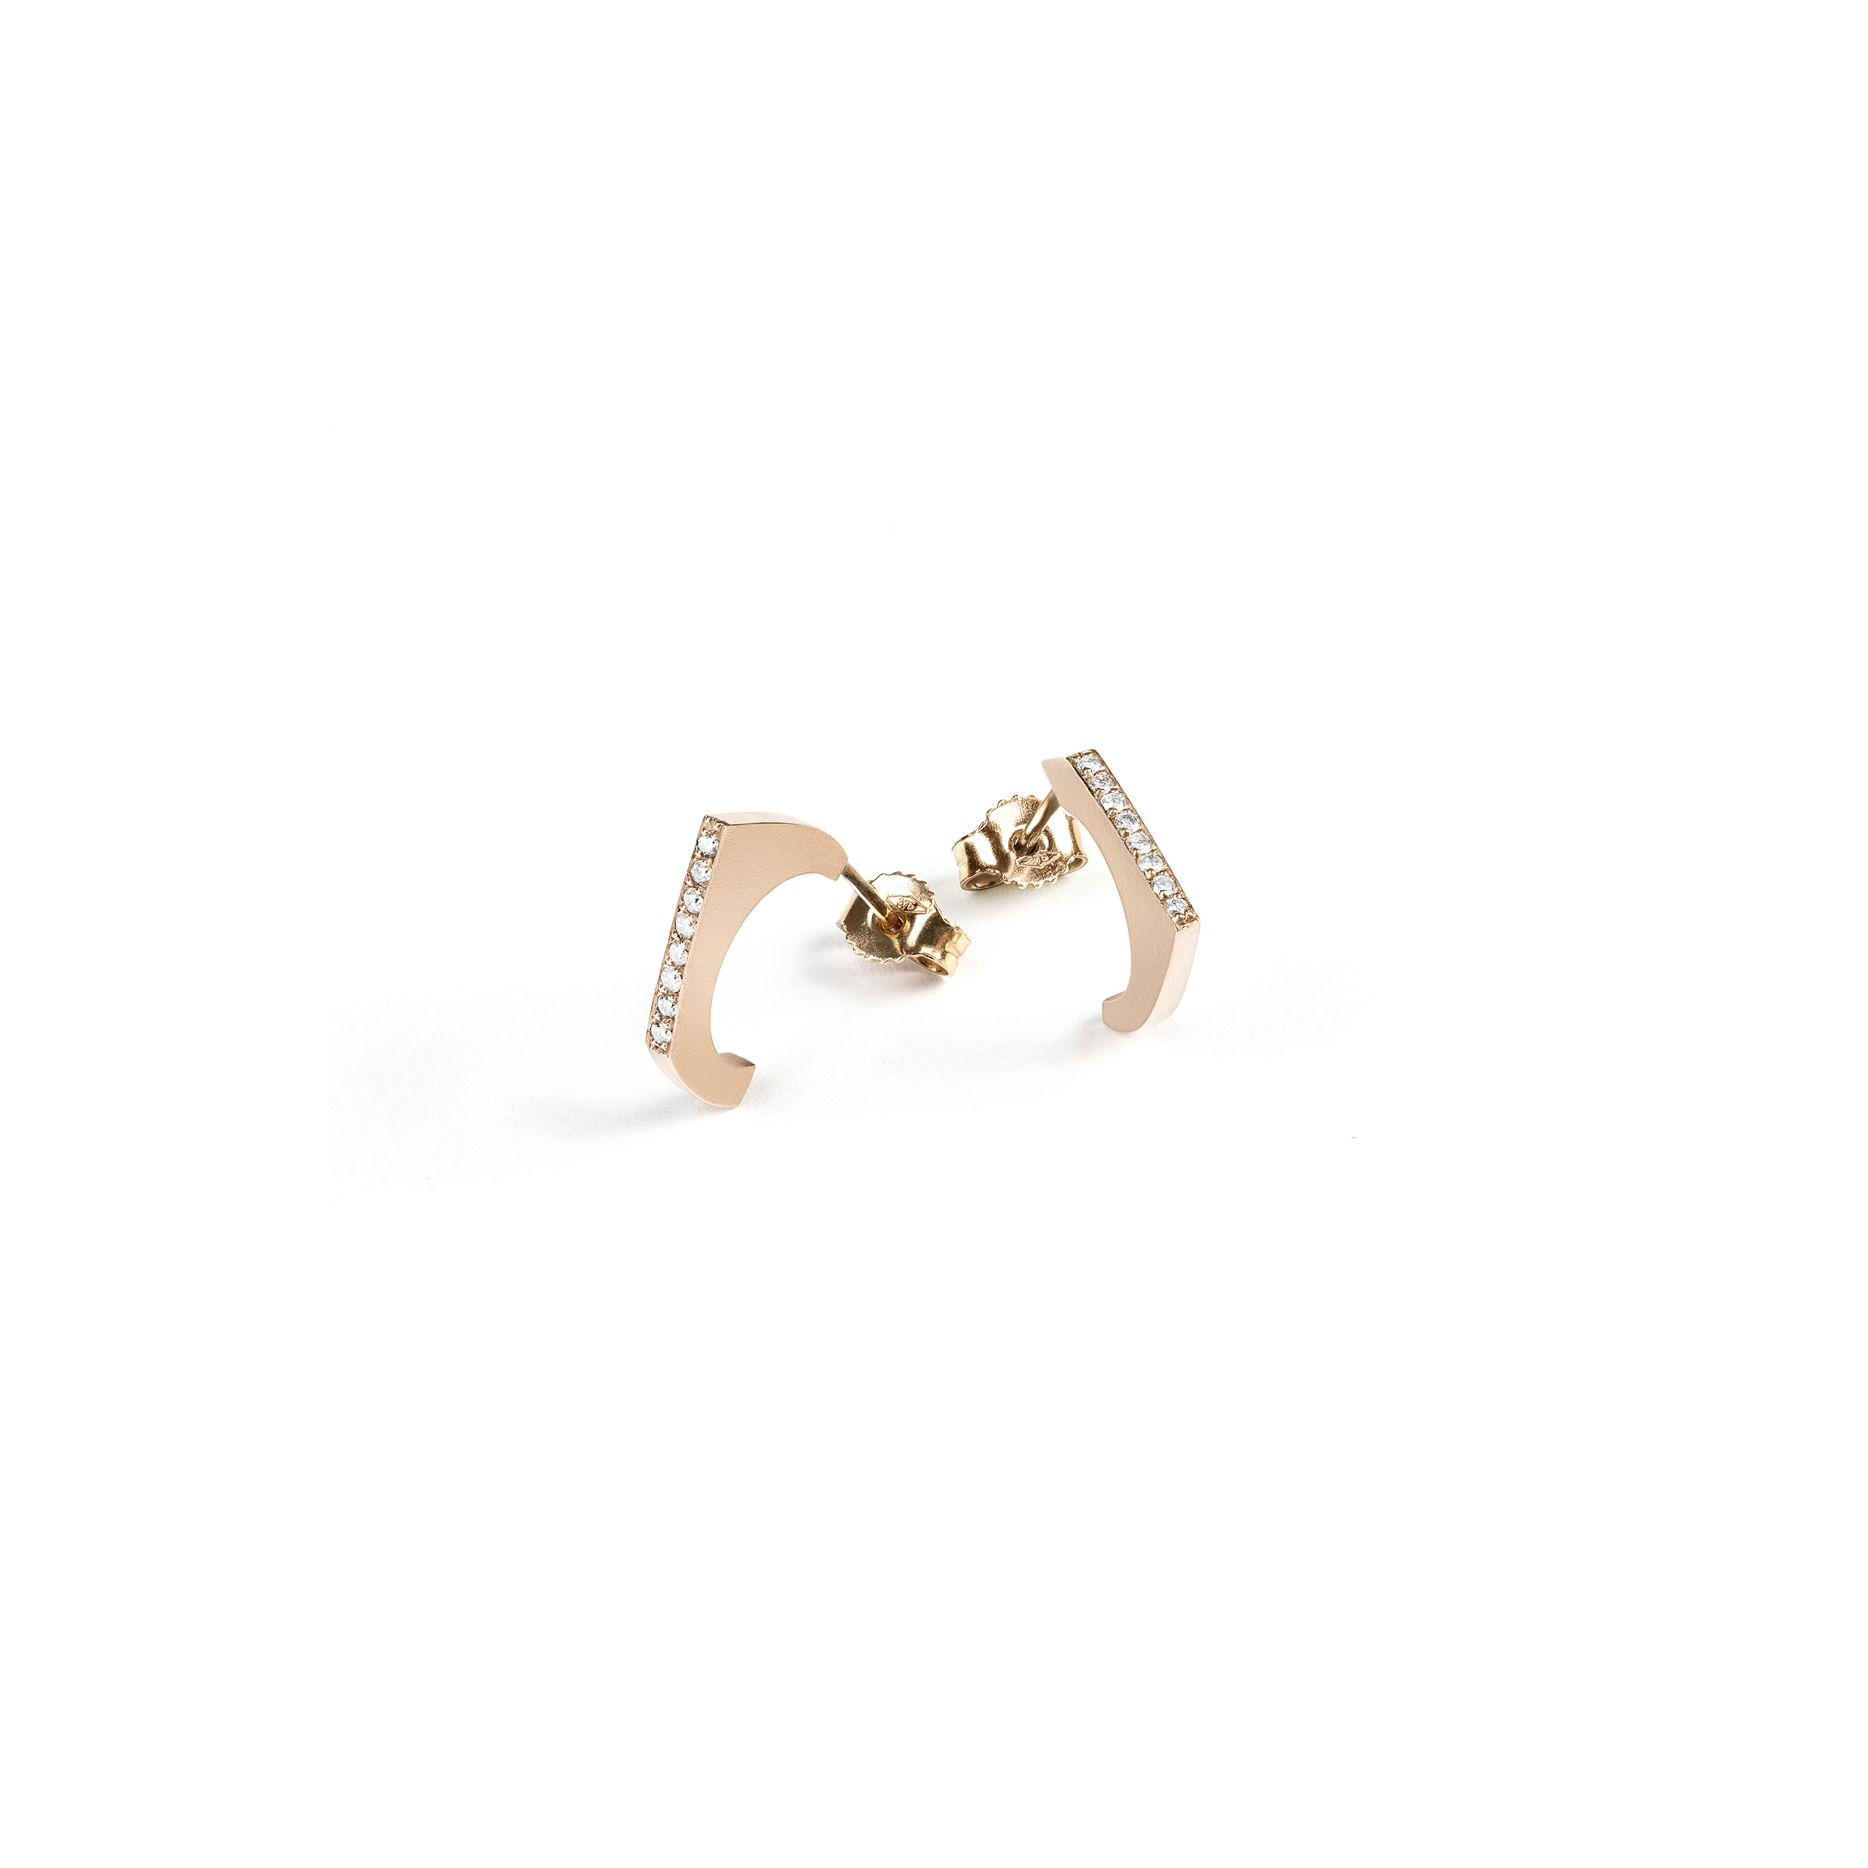 'Congiunzioni' 1 element earring Rose gold and diamond earrings